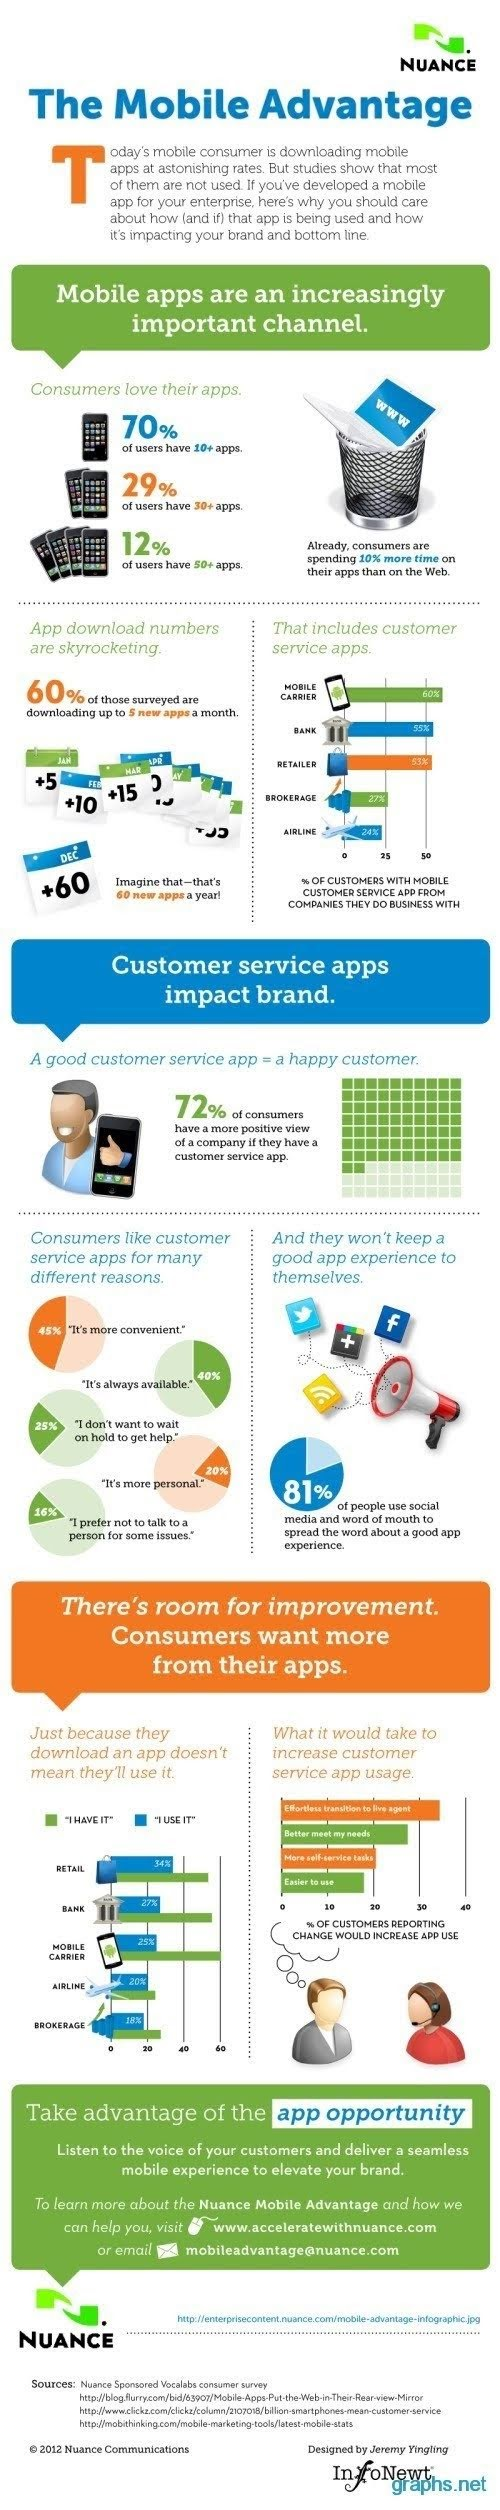 Mobile Marketing Advantages #infographic